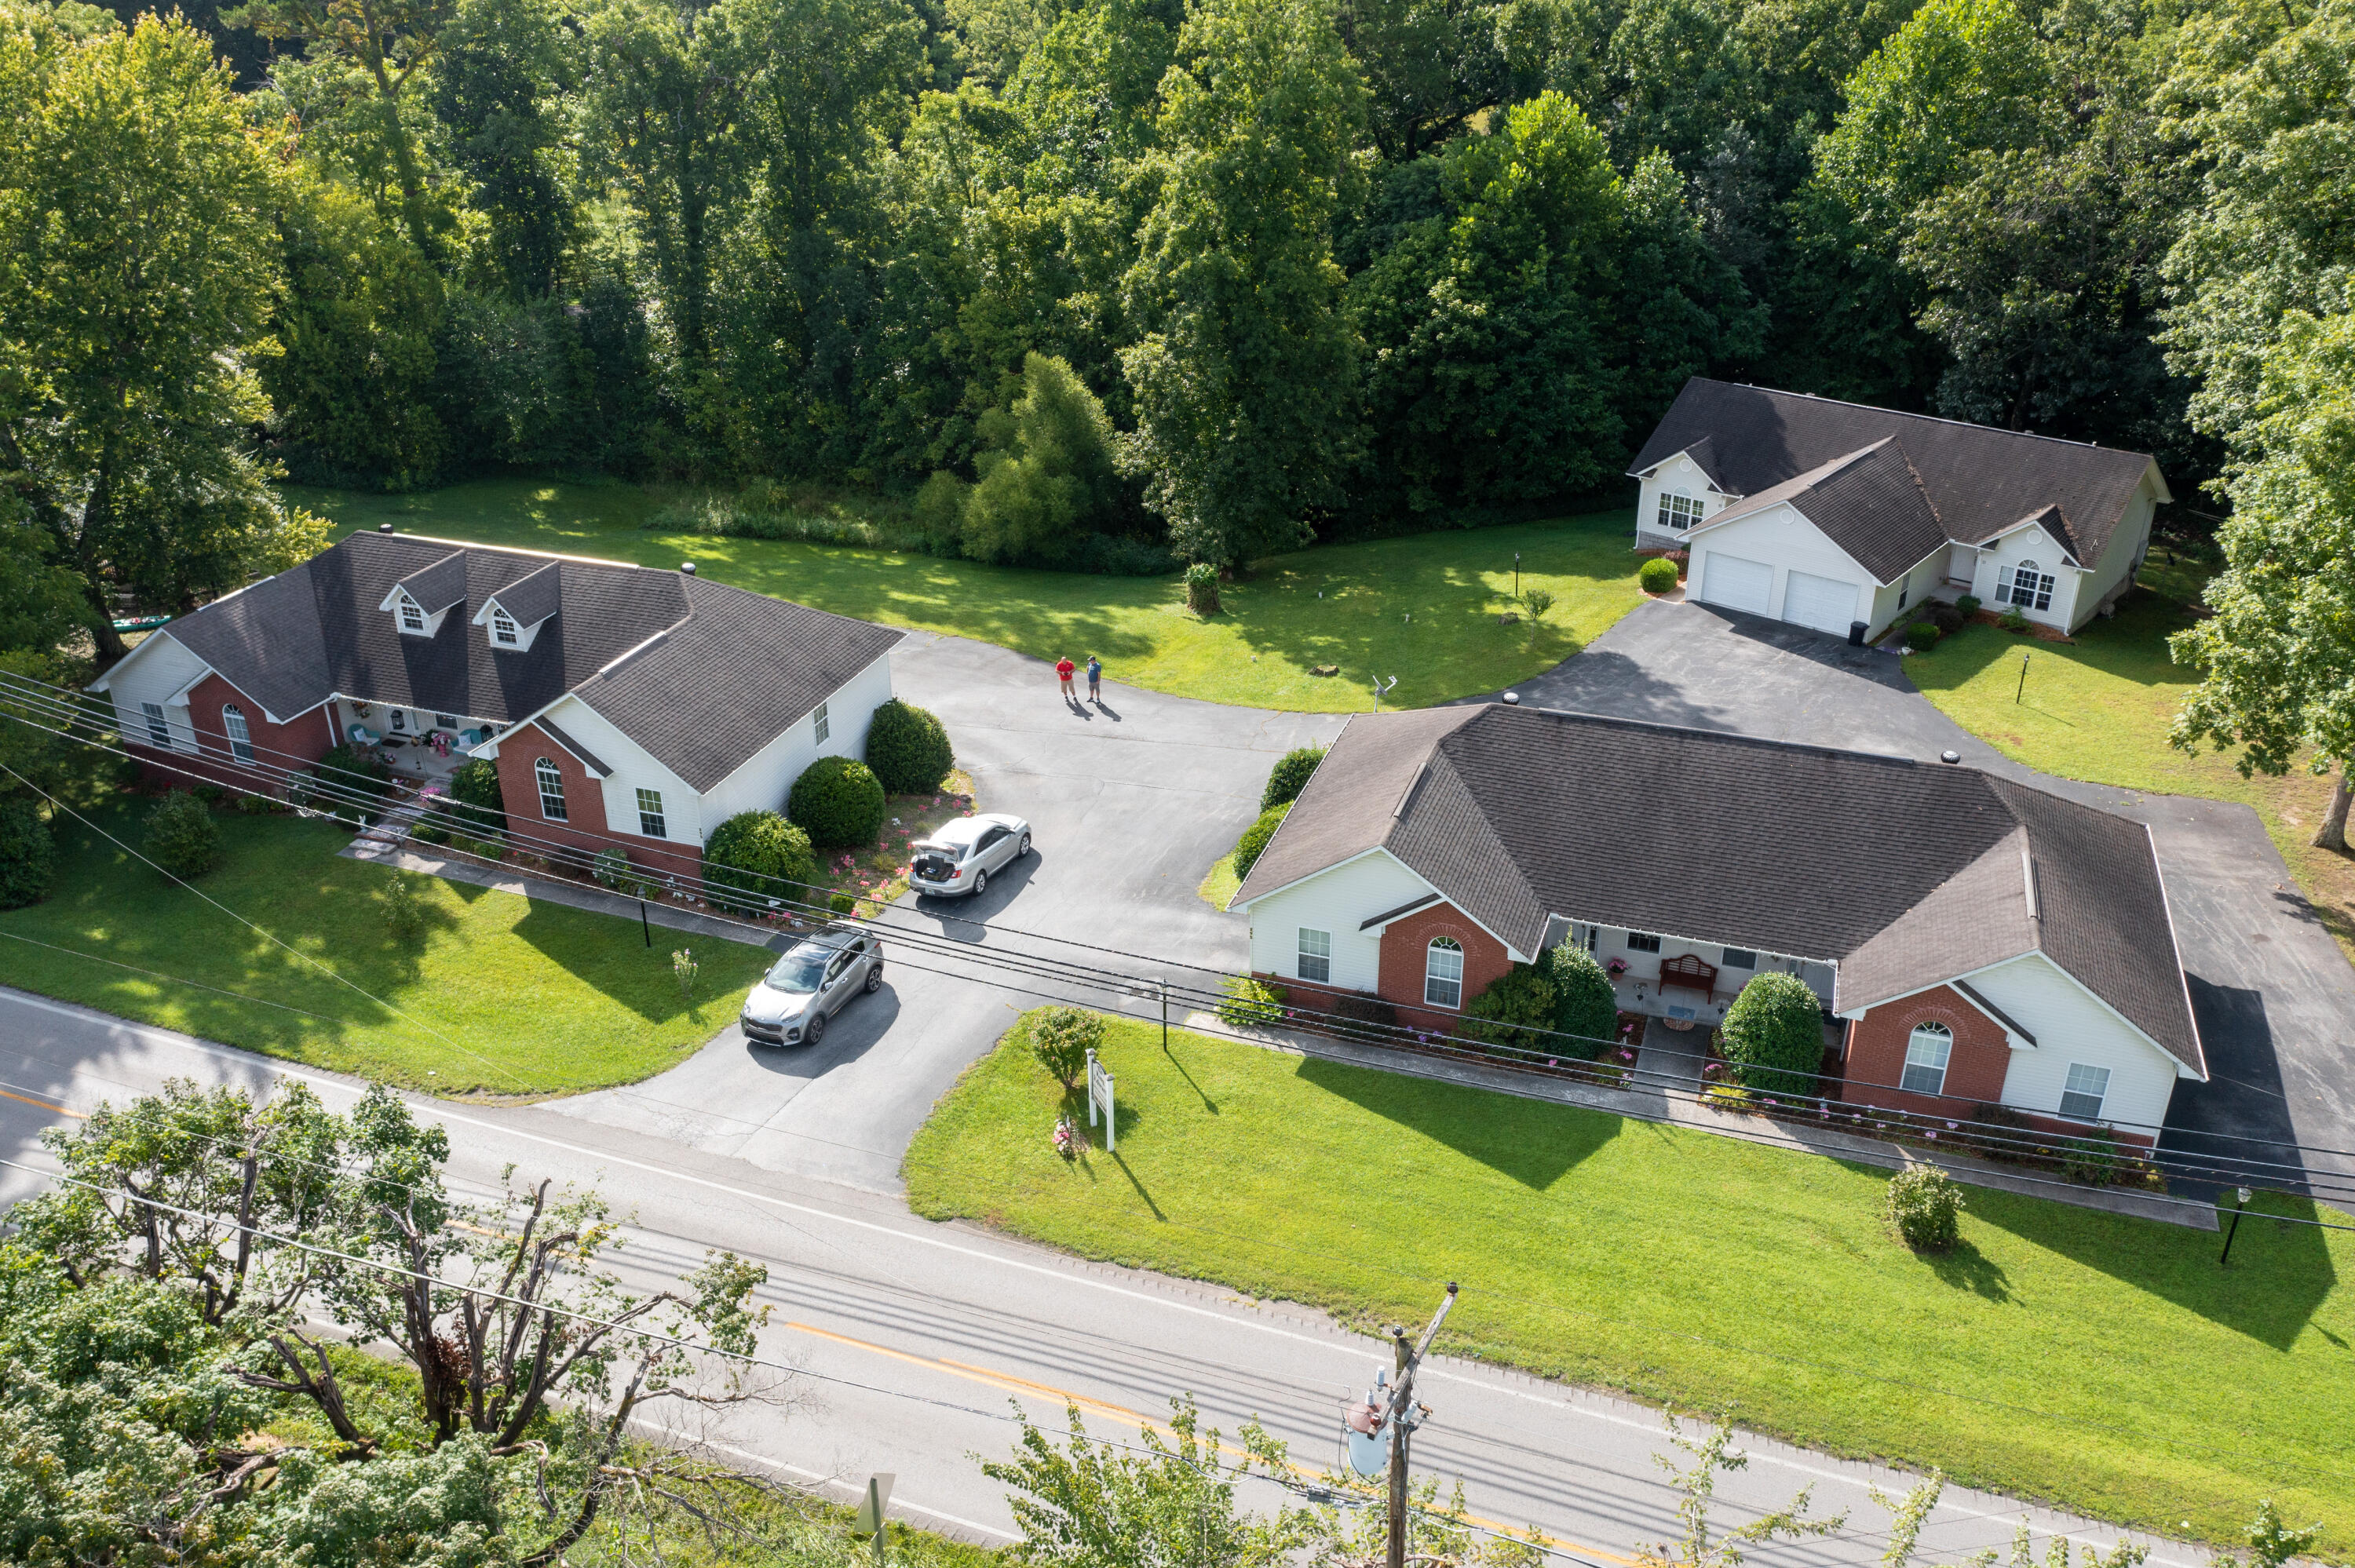 295 State Highway 1651, Whitley City, KY 42653